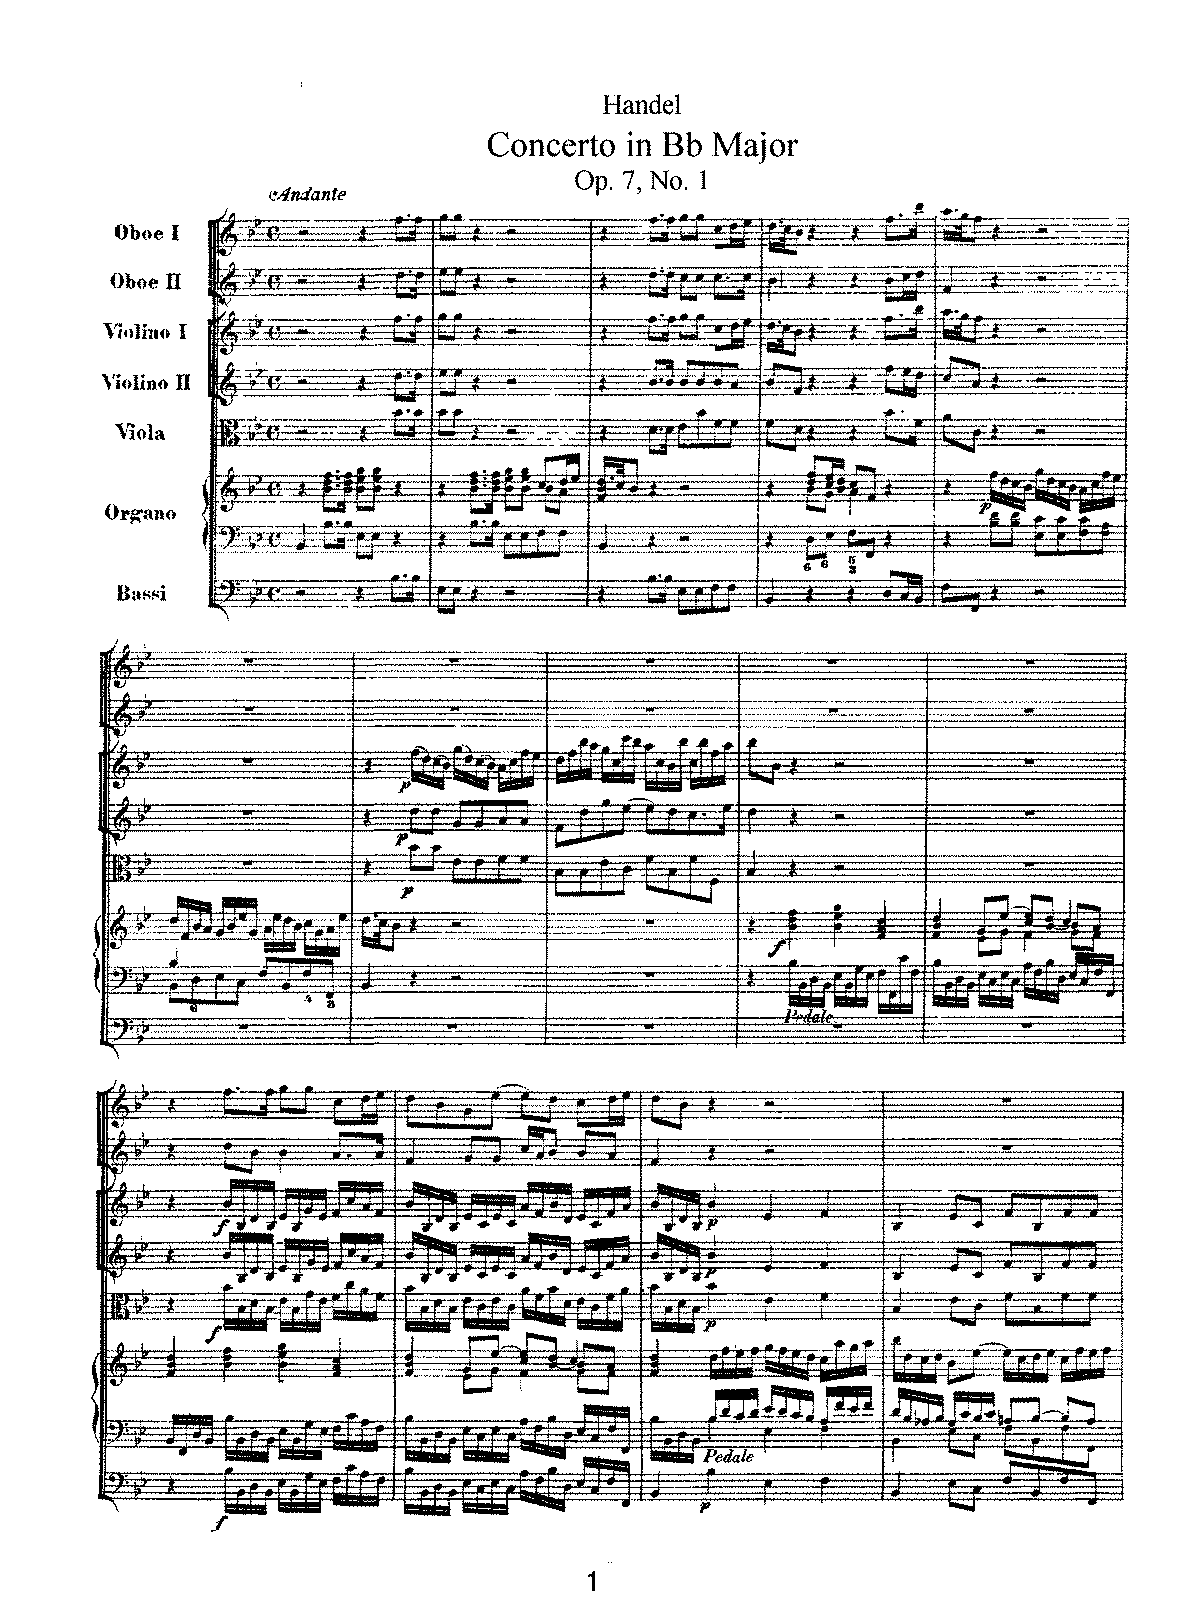 Handel - Concerto in Bb major, Op.7 No.1.pdf